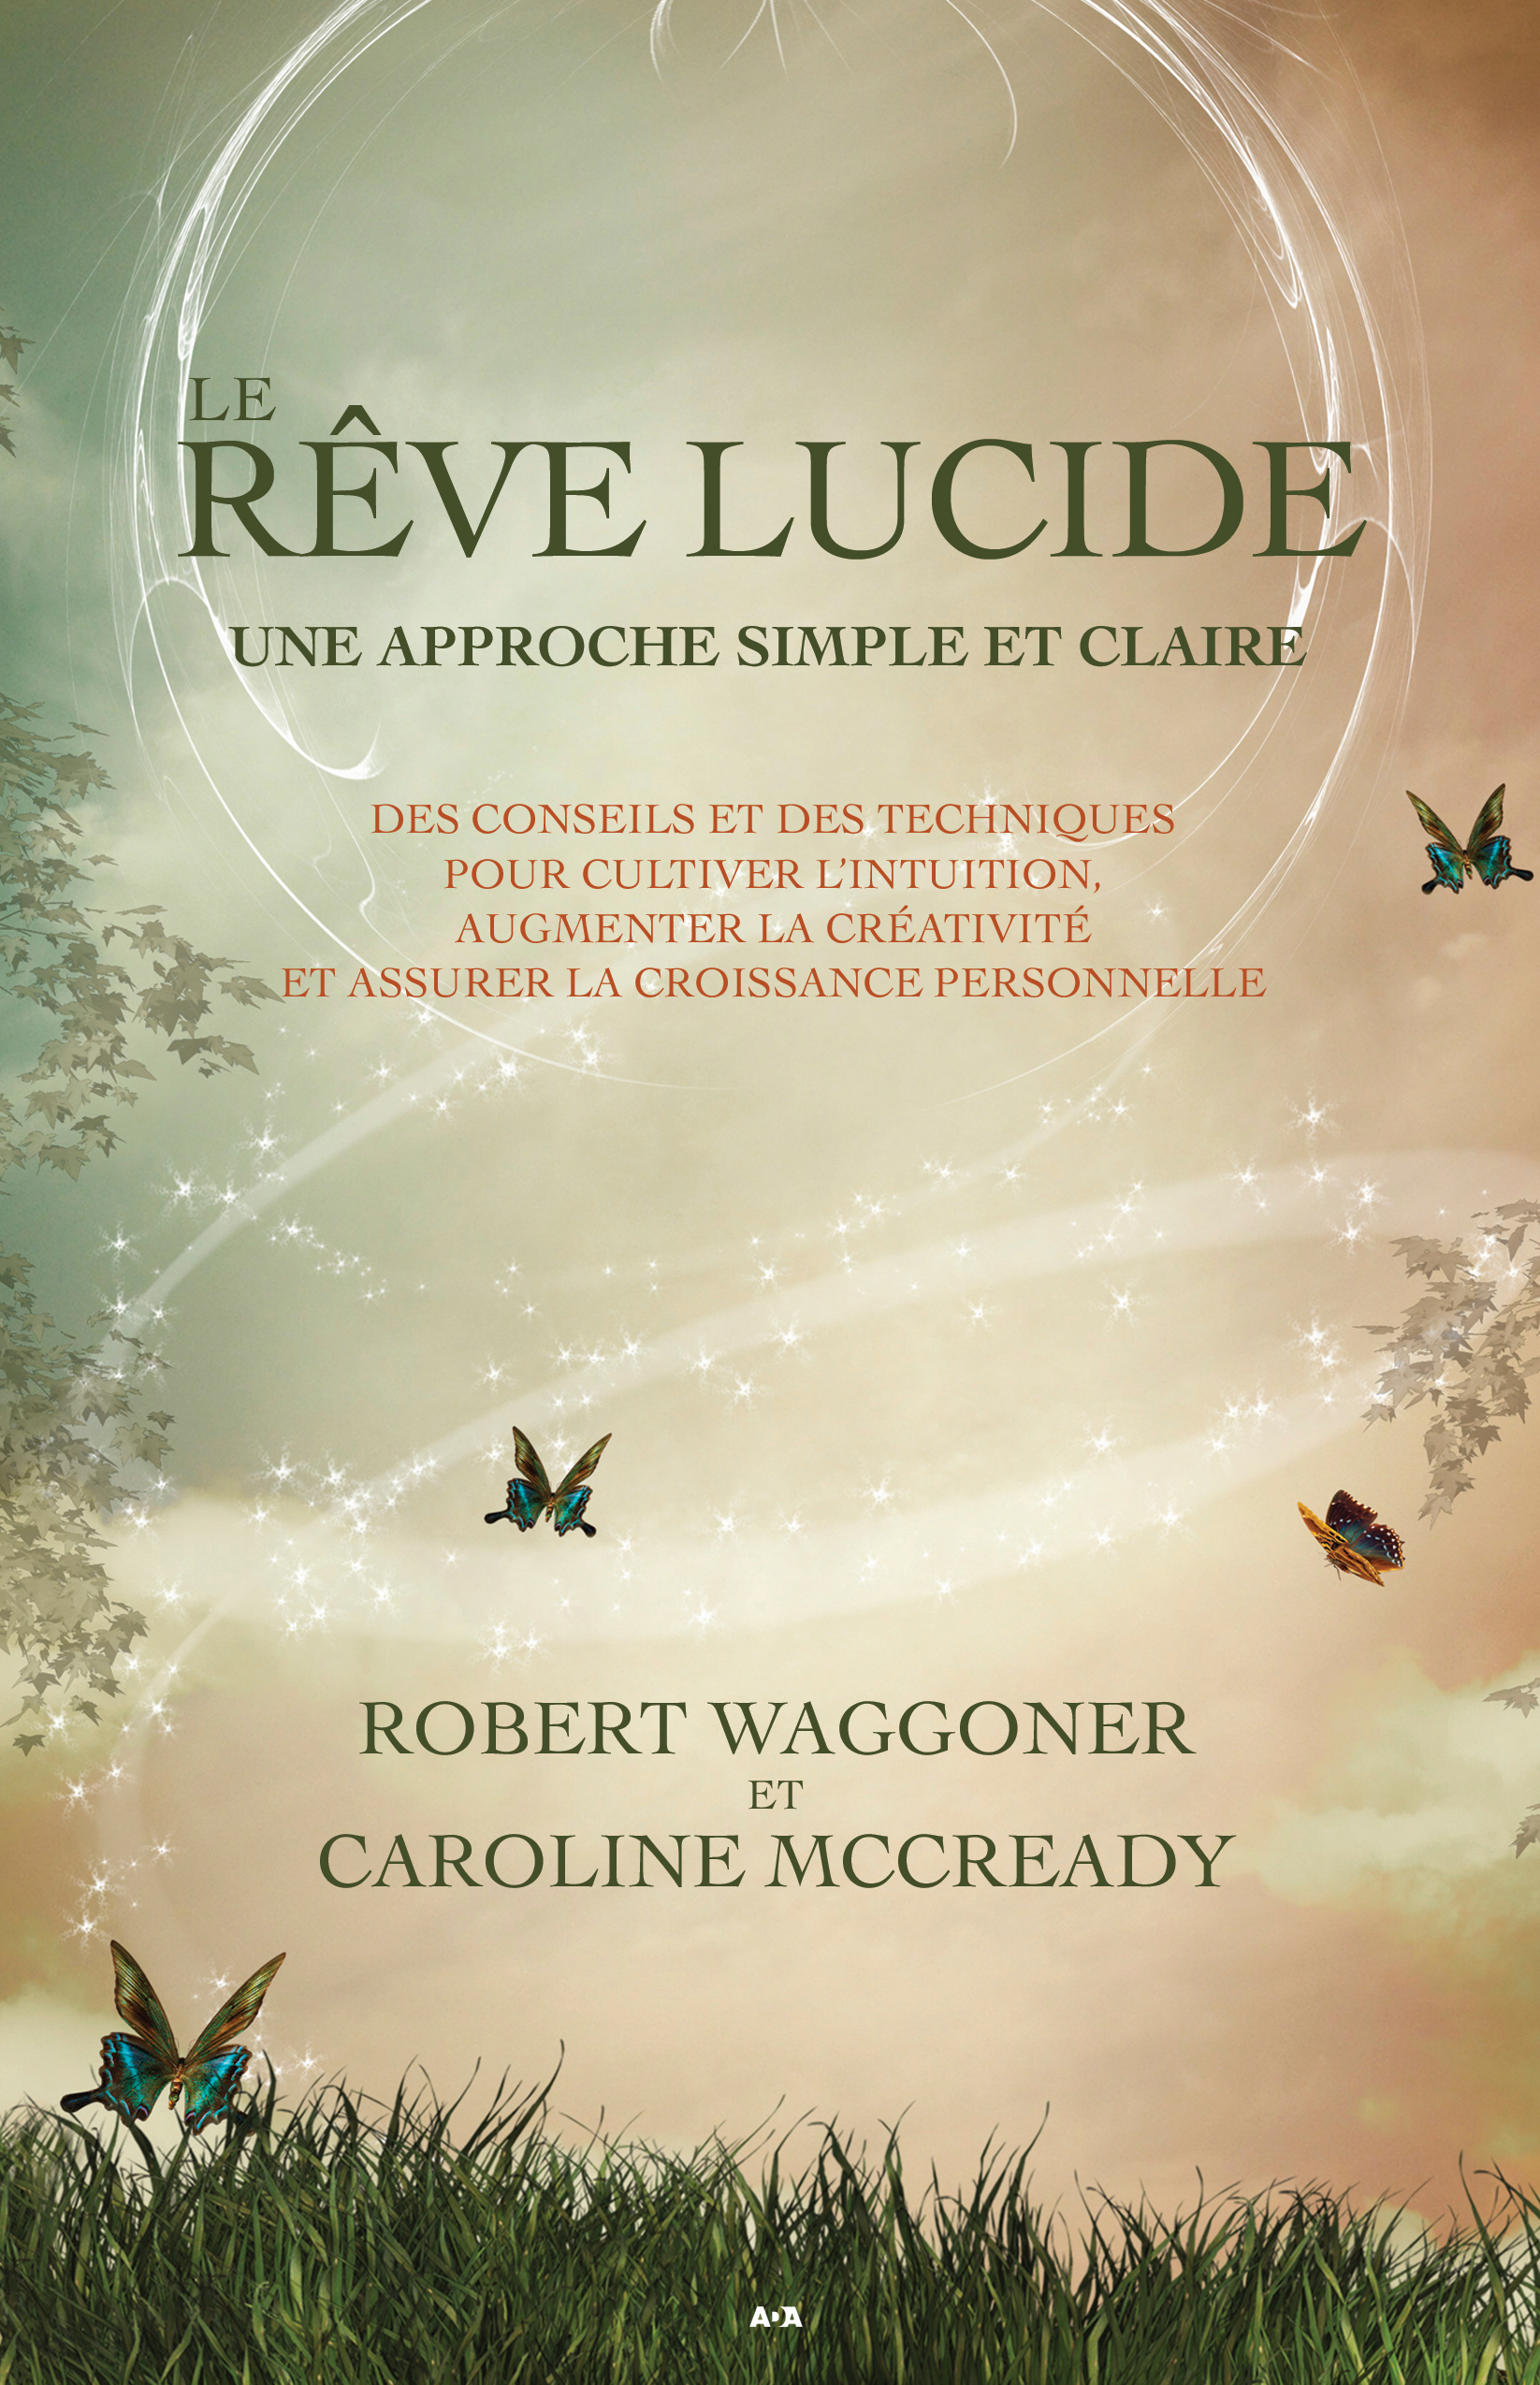 Le rêve lucide